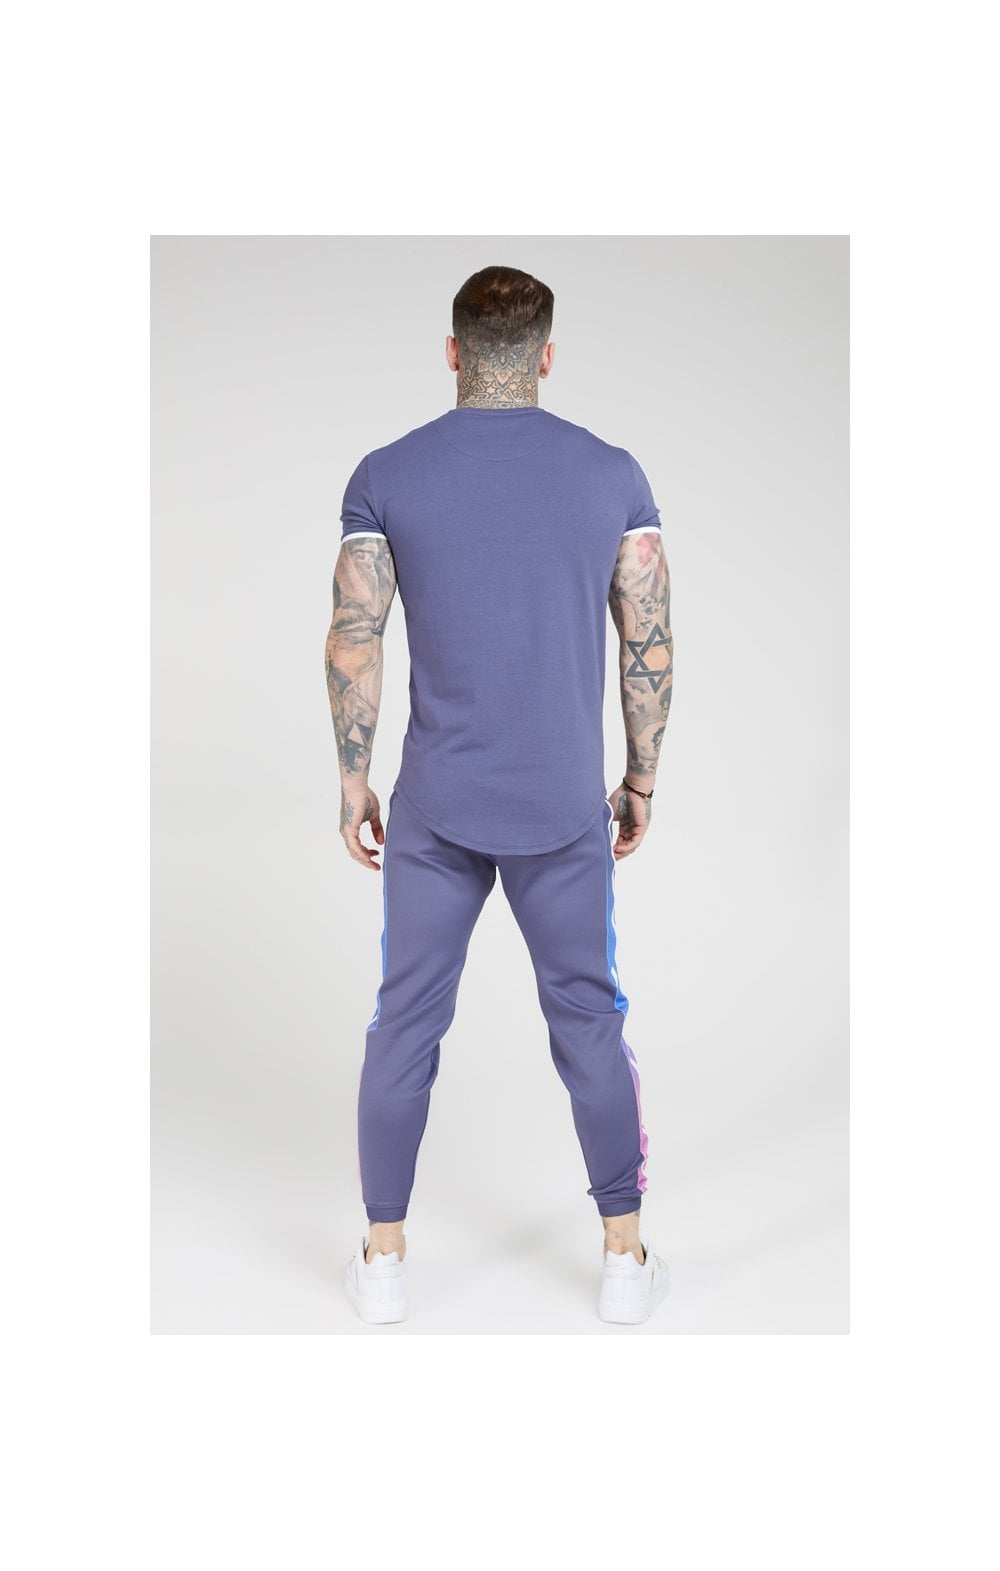 SikSilk S/S Panel Gym Tee – Ocean Slate (4)